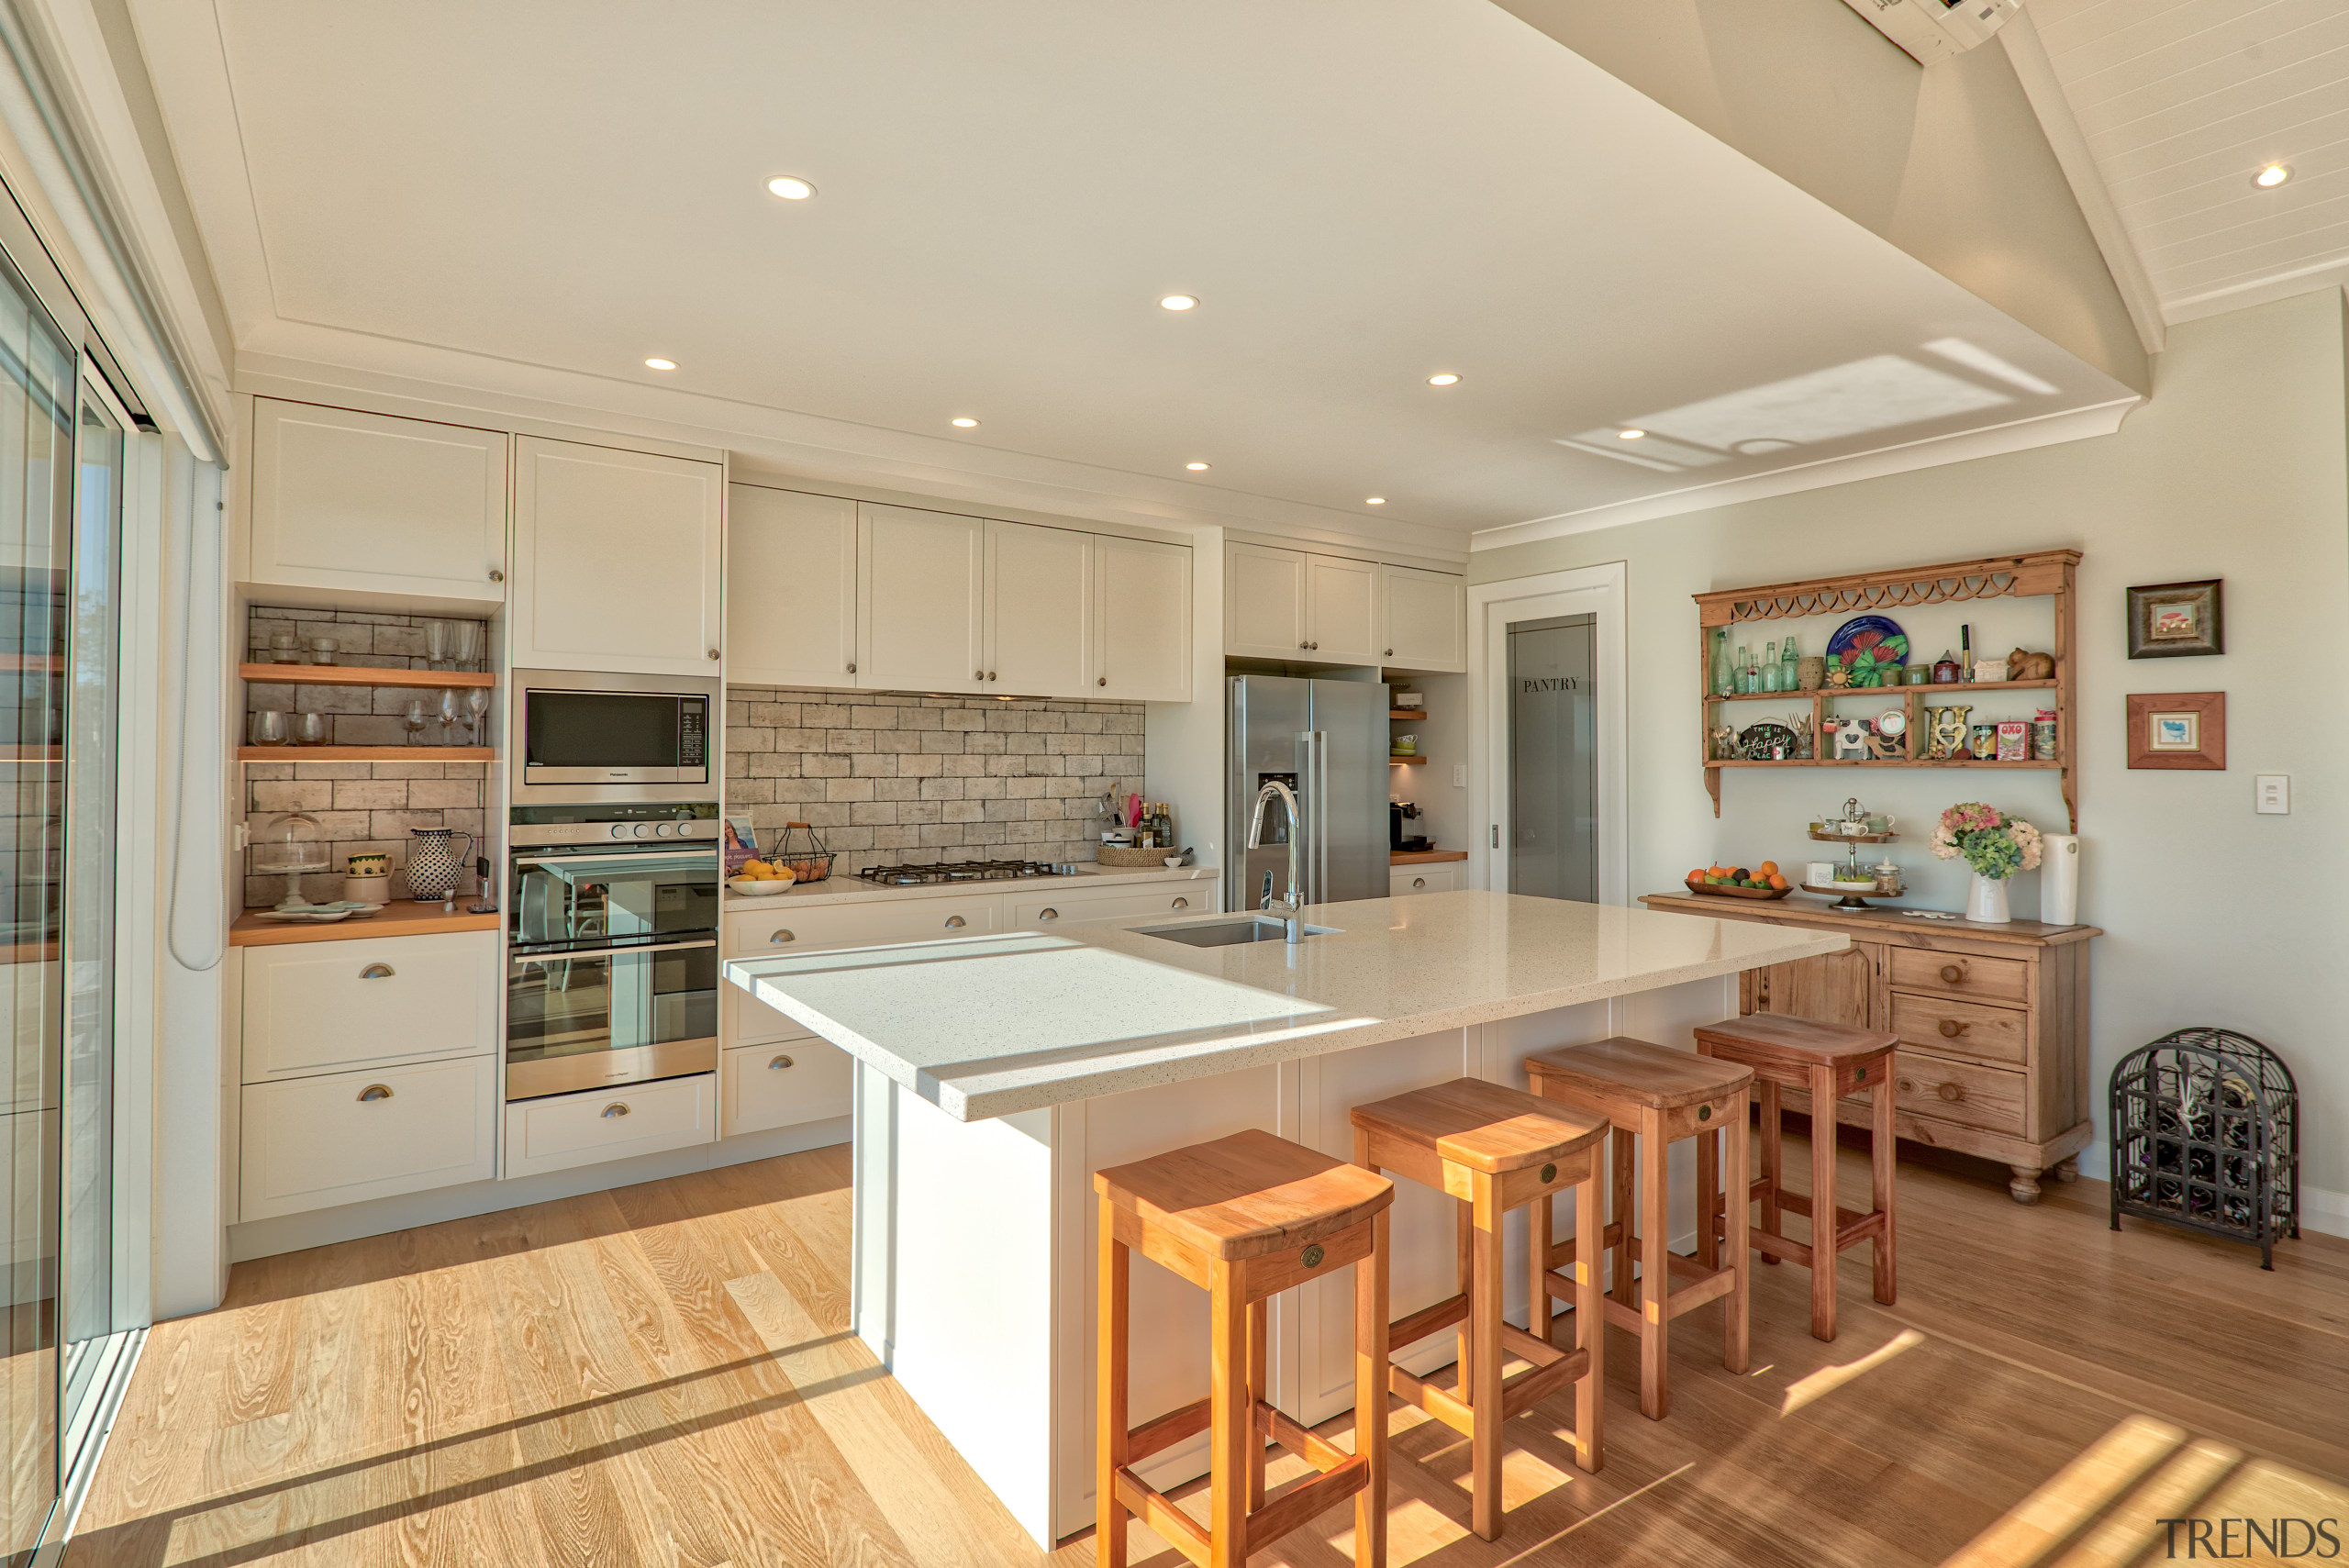 The owner of this Fowler Homes-built residence works cabinetry, countertop, cuisine classique, interior design, kitchen, real estate, room, Fowler homes, home builder